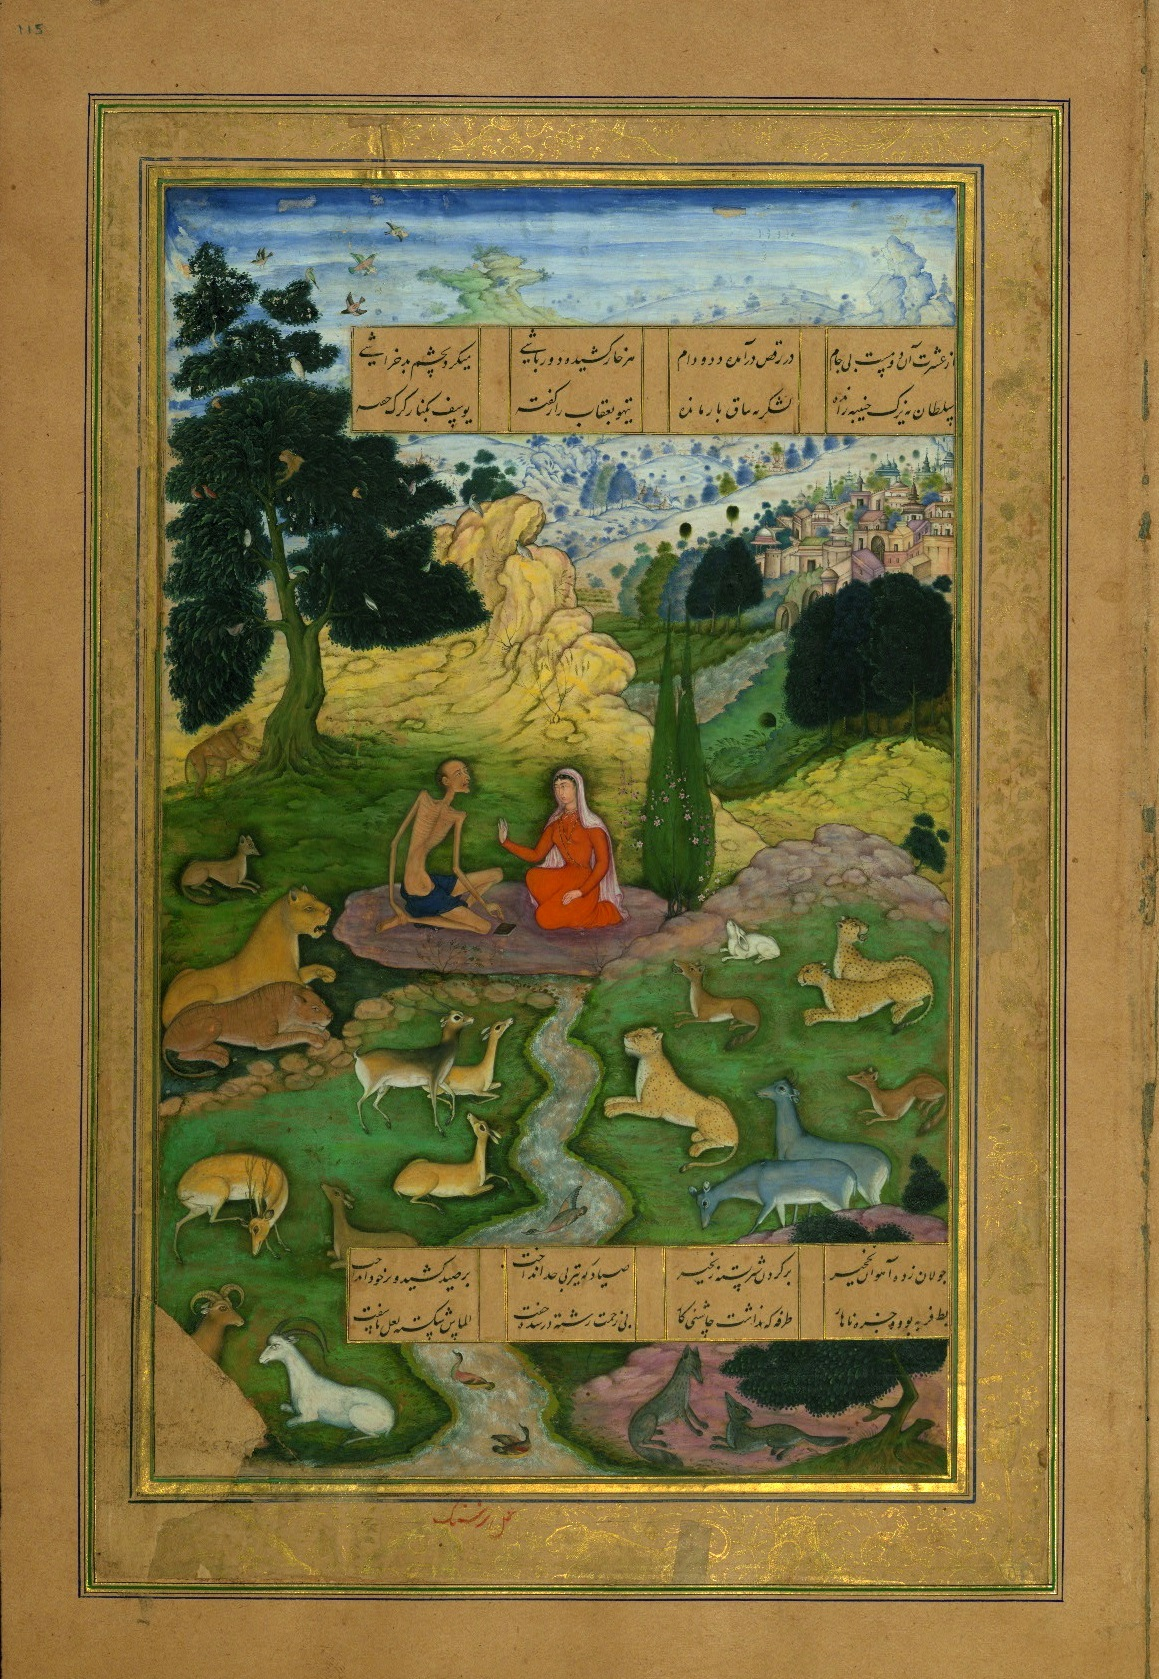 Majnun in Wilderness based on Amir Khusro's version of Layla Majnun, Walter Arts Museum